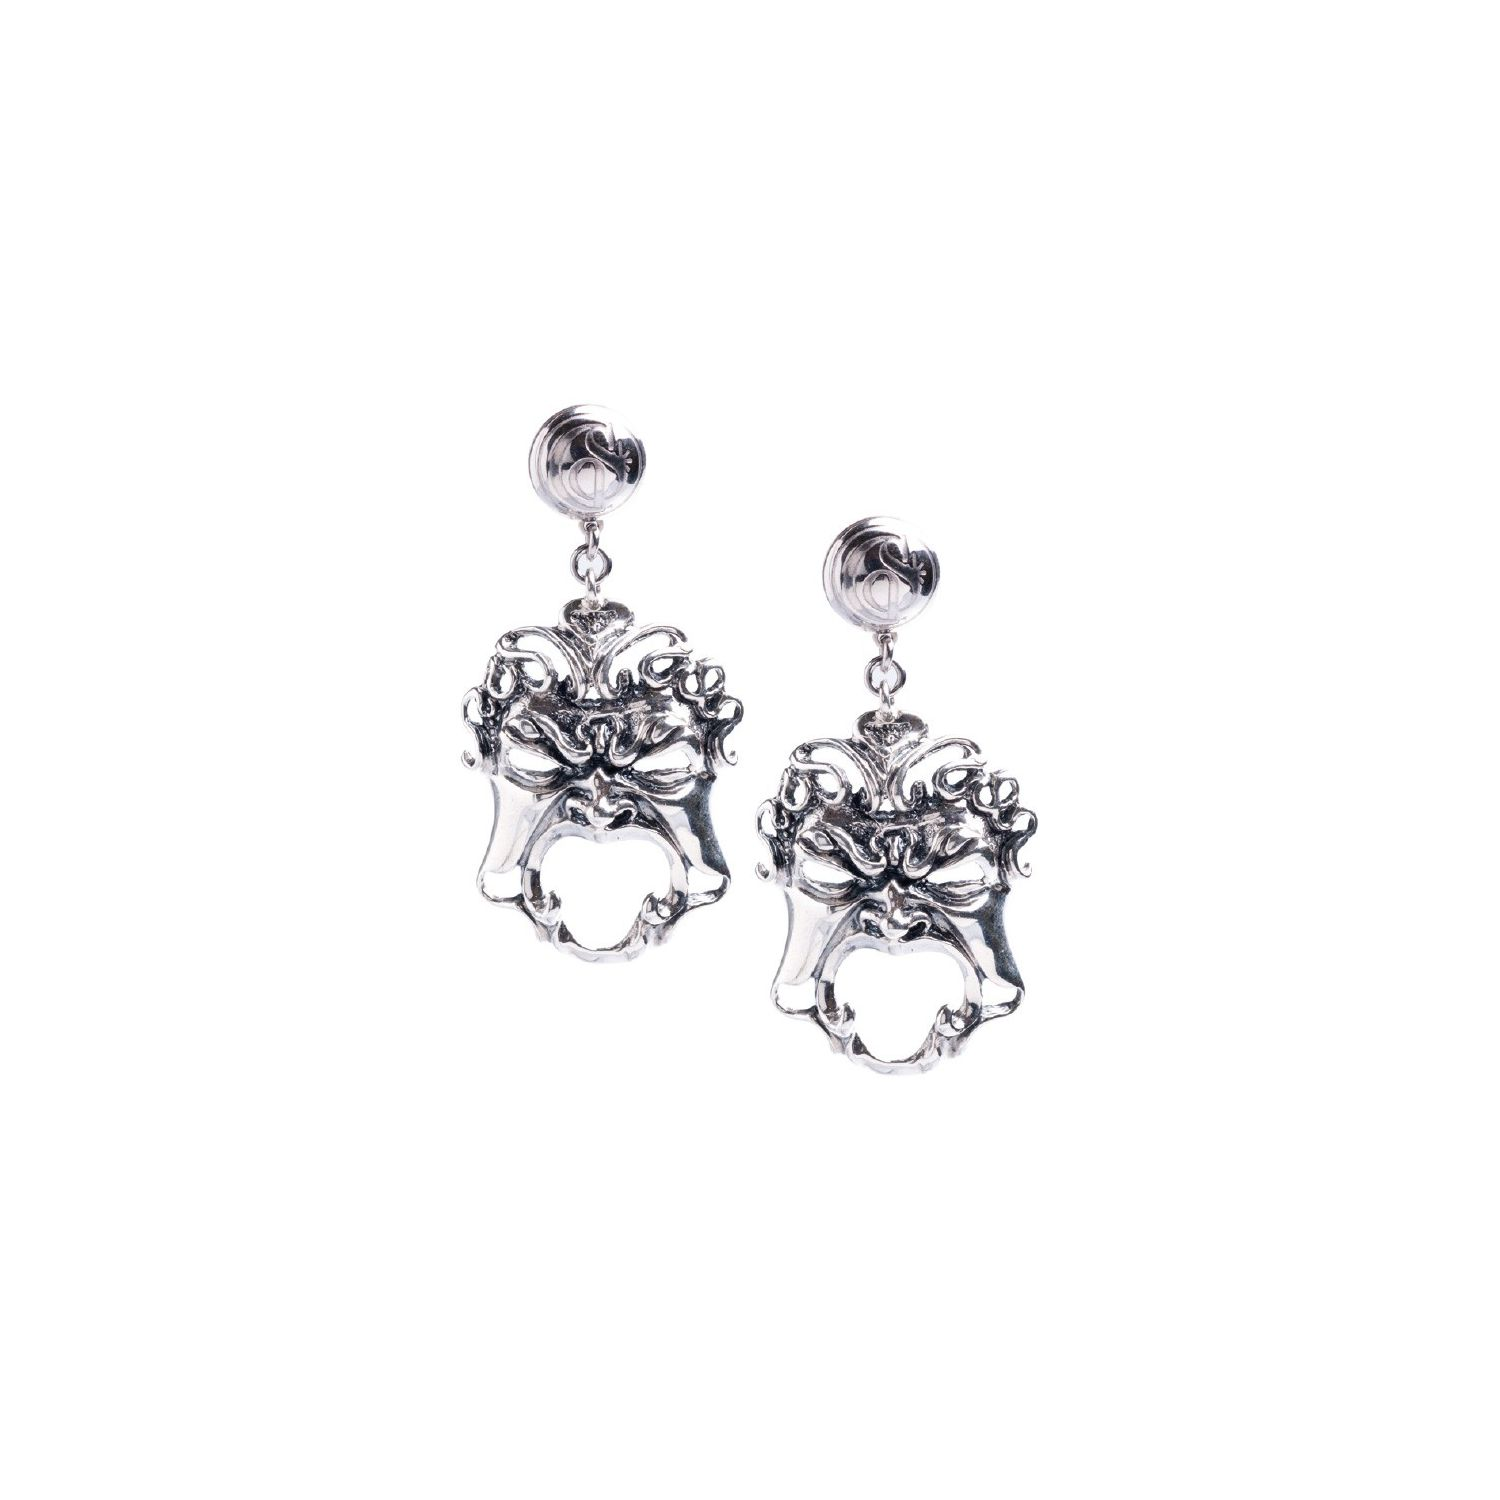 Earrings with Masks (27578)